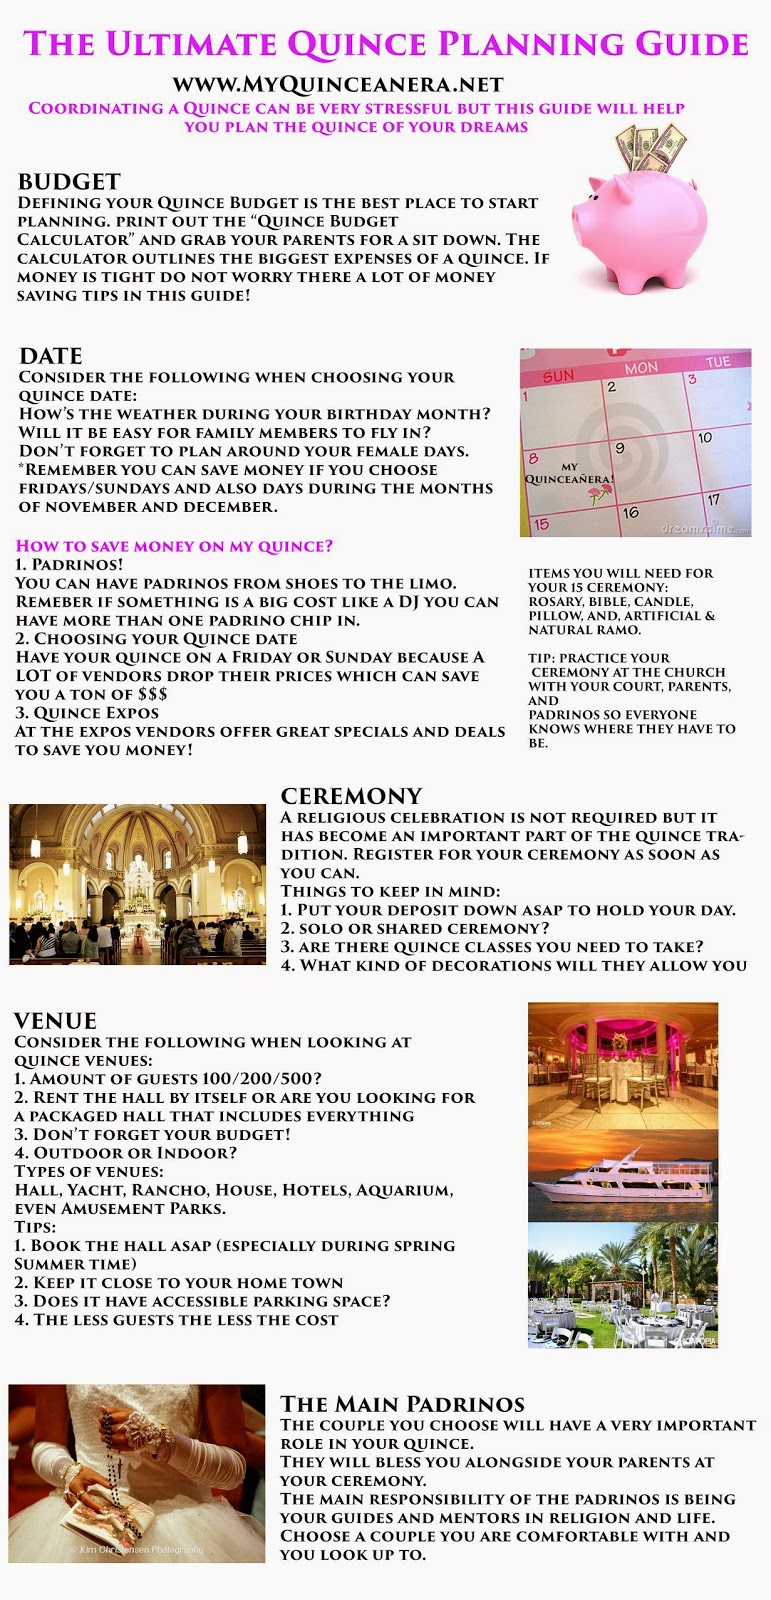 My Quinceañera: Planning Guide - Free Quinceanera Planner Printable